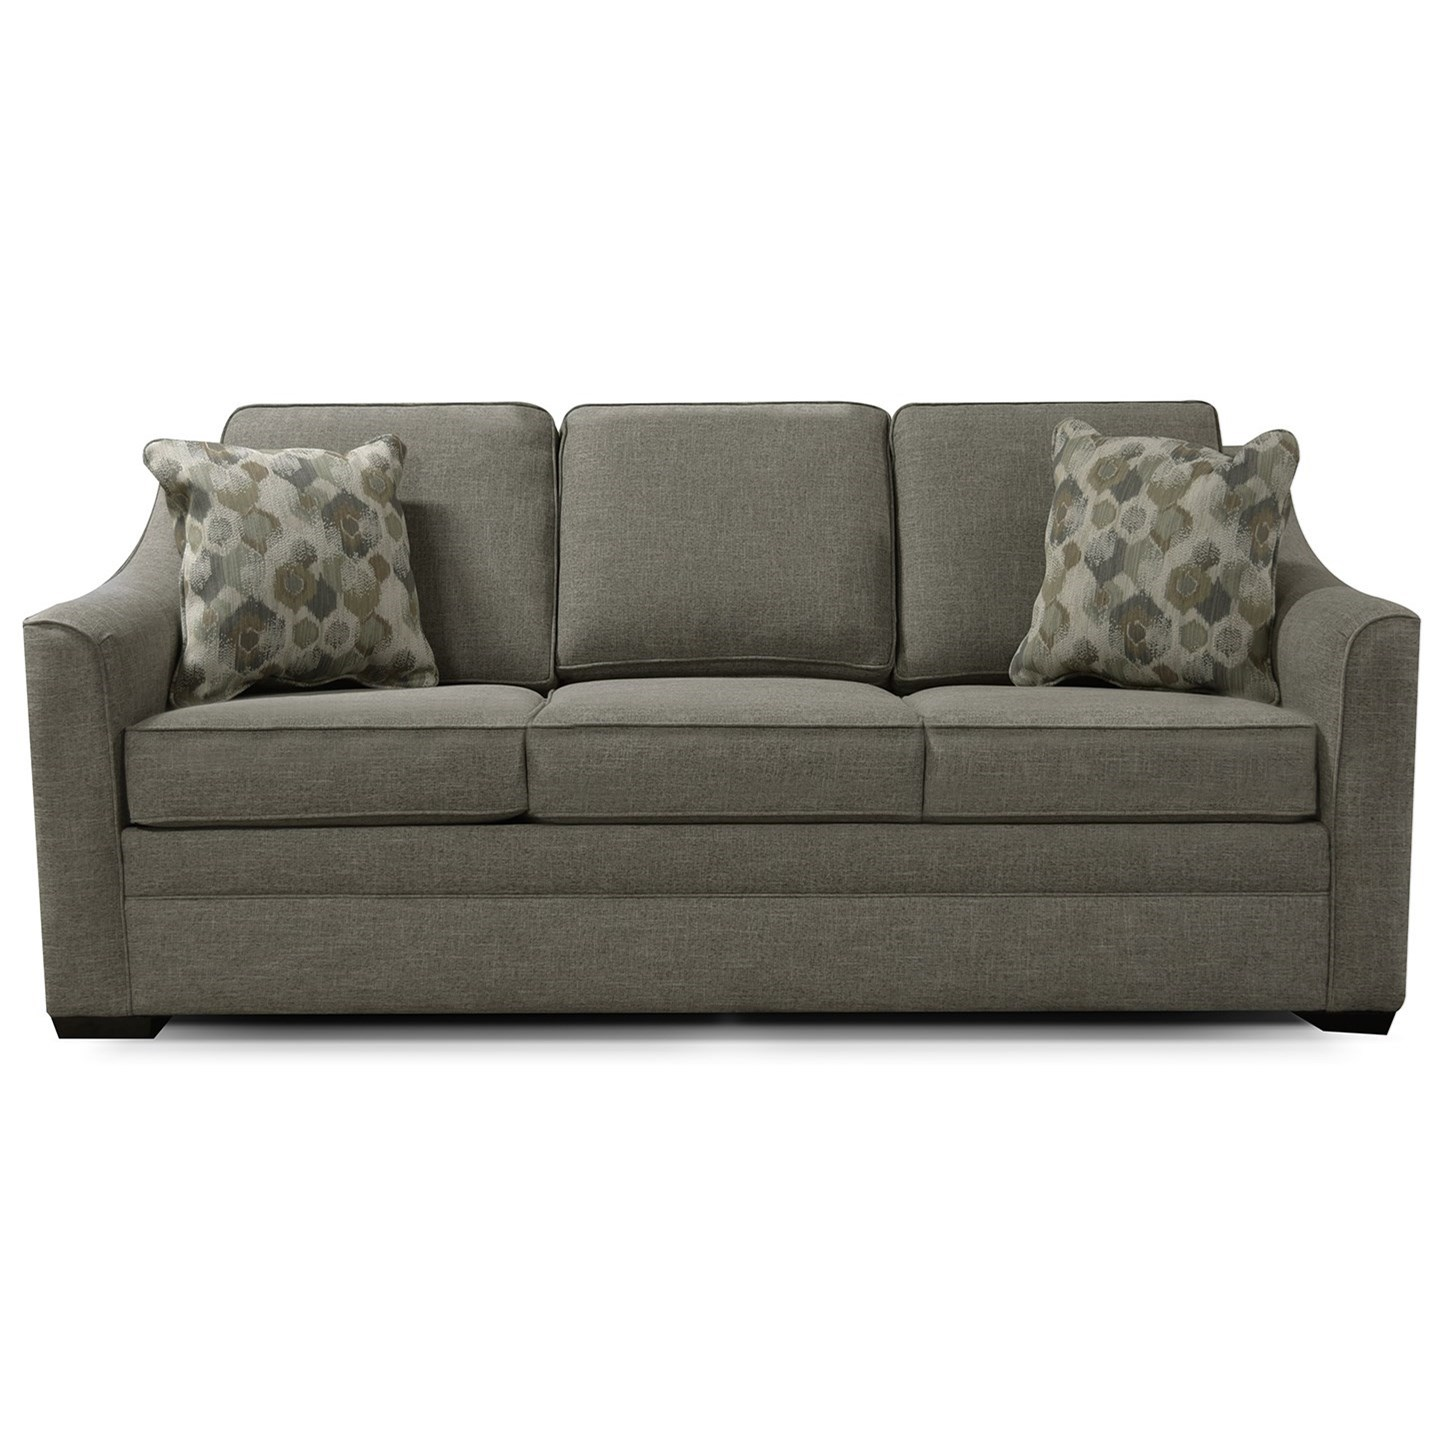 V4T0 Sofa by Alexvale at Northeast Factory Direct